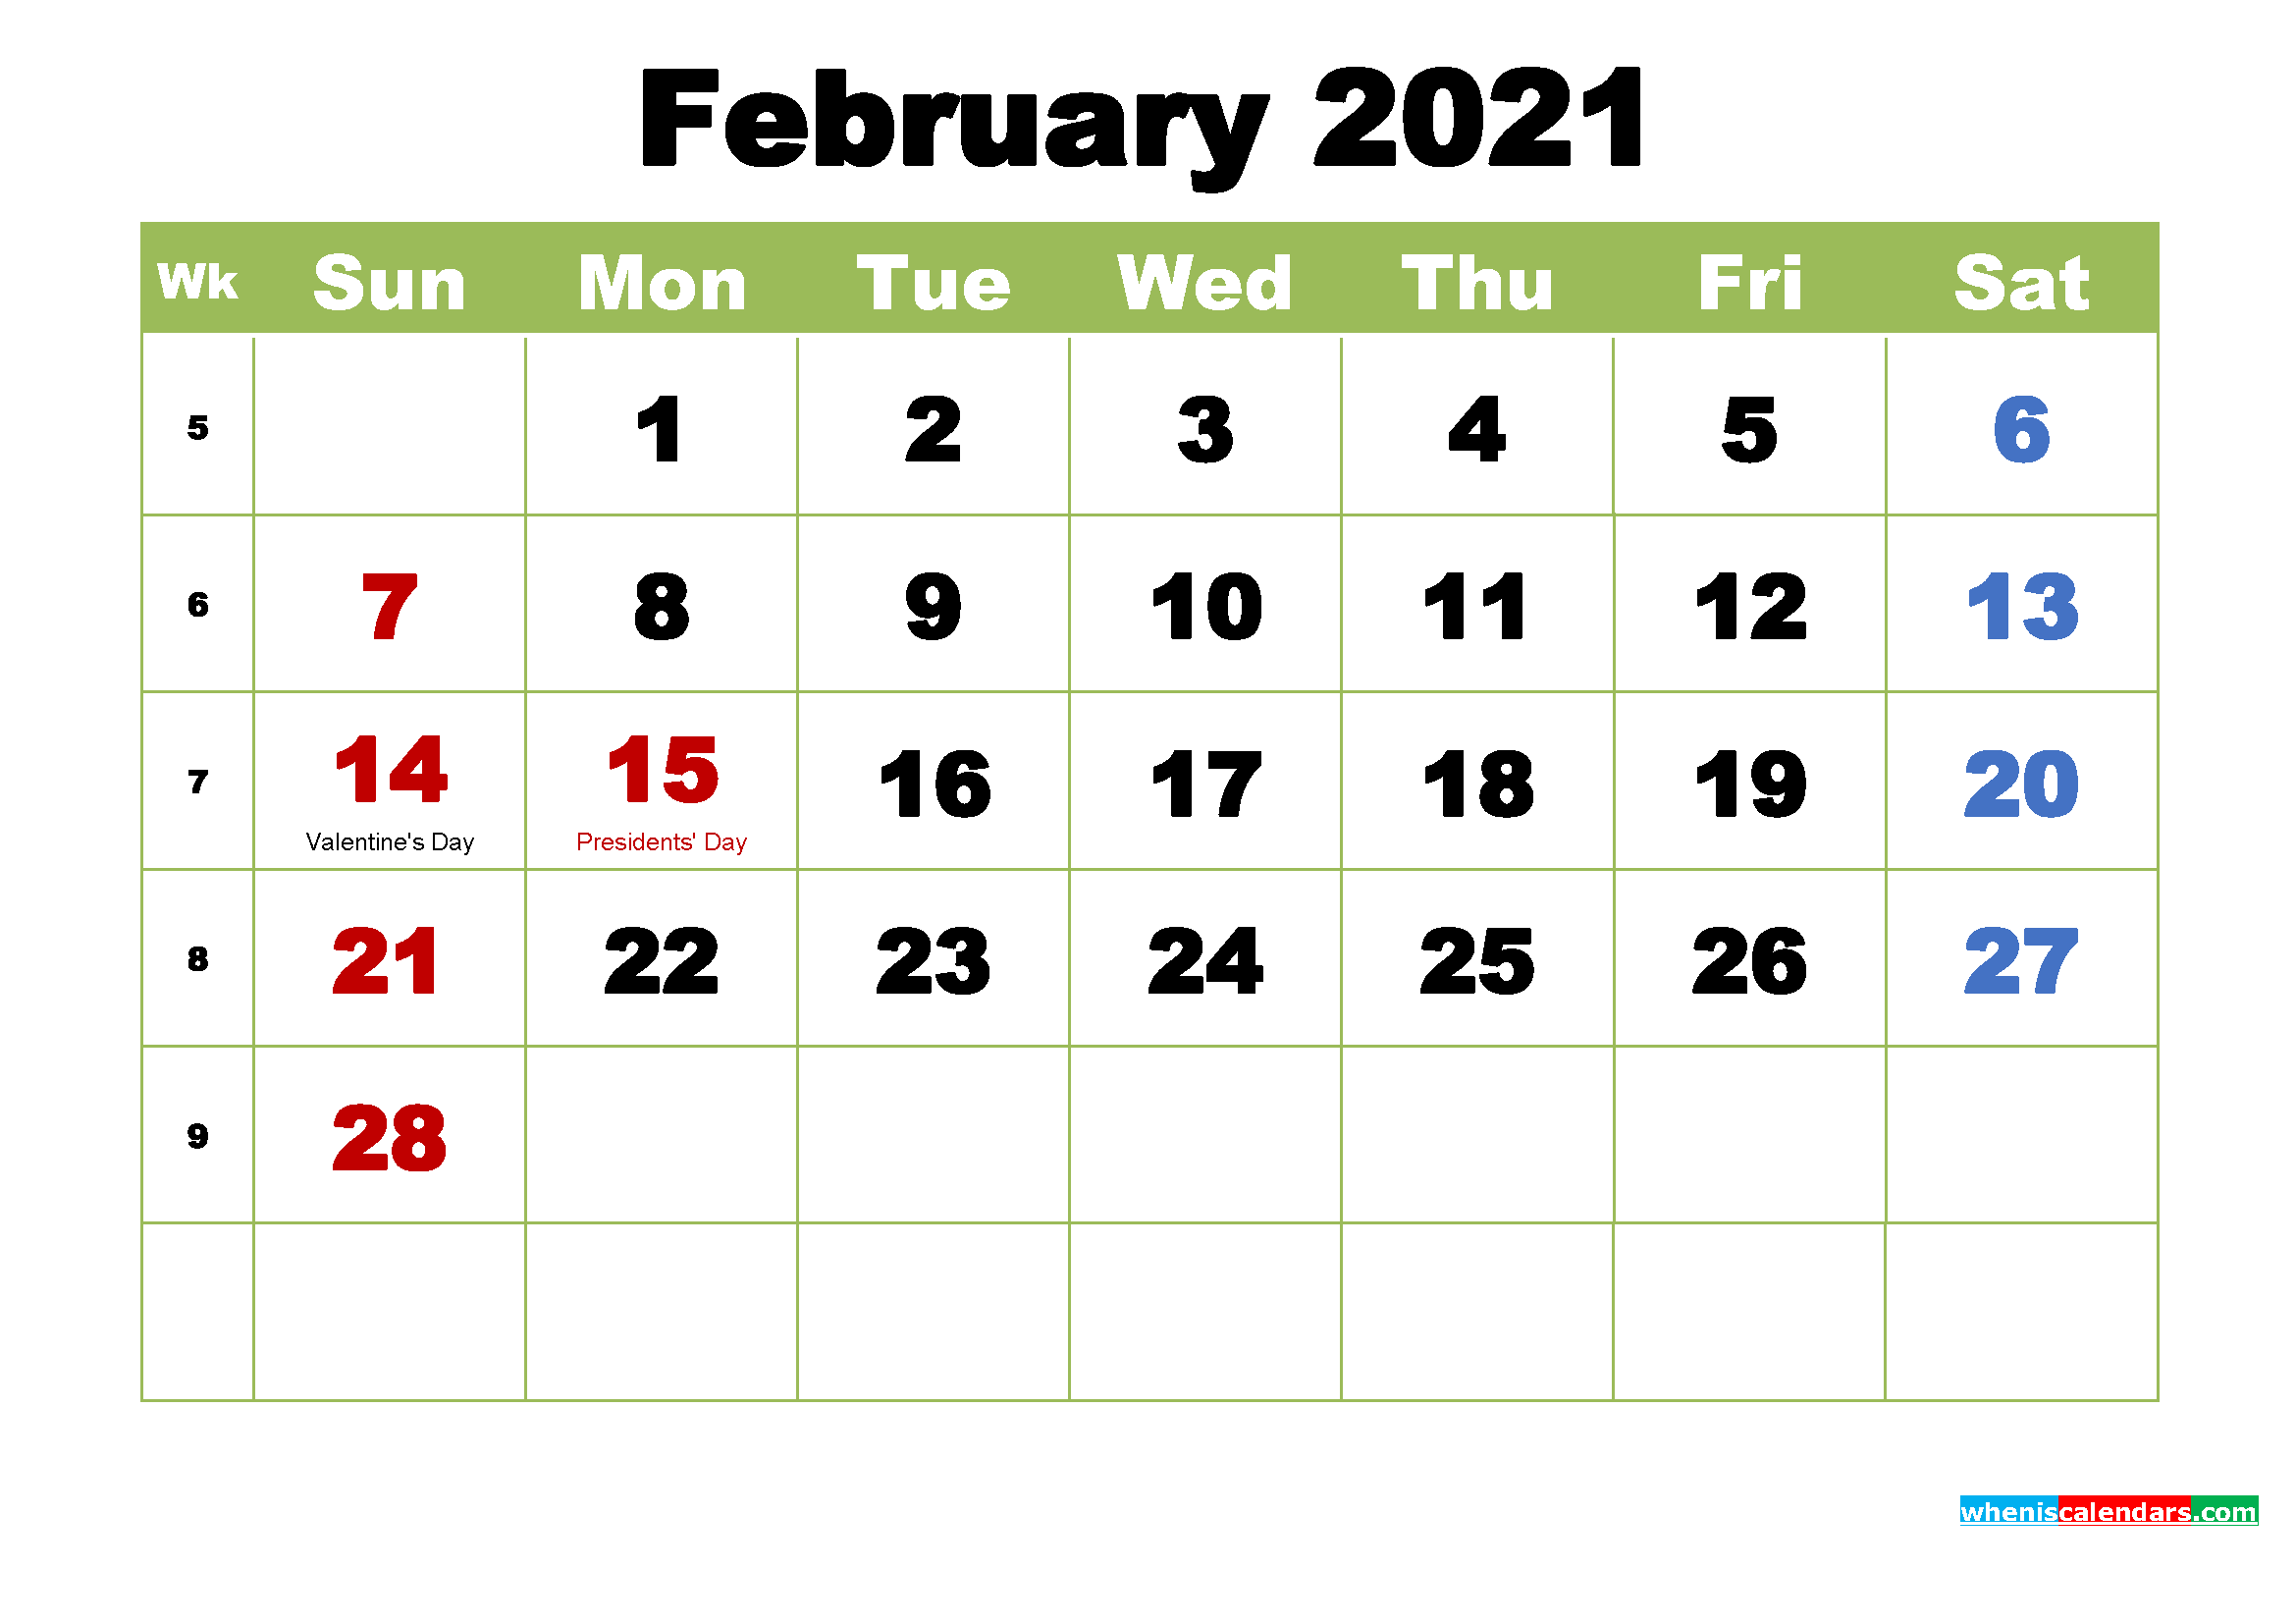 Free February 2021 Printable Calendar with Holidays